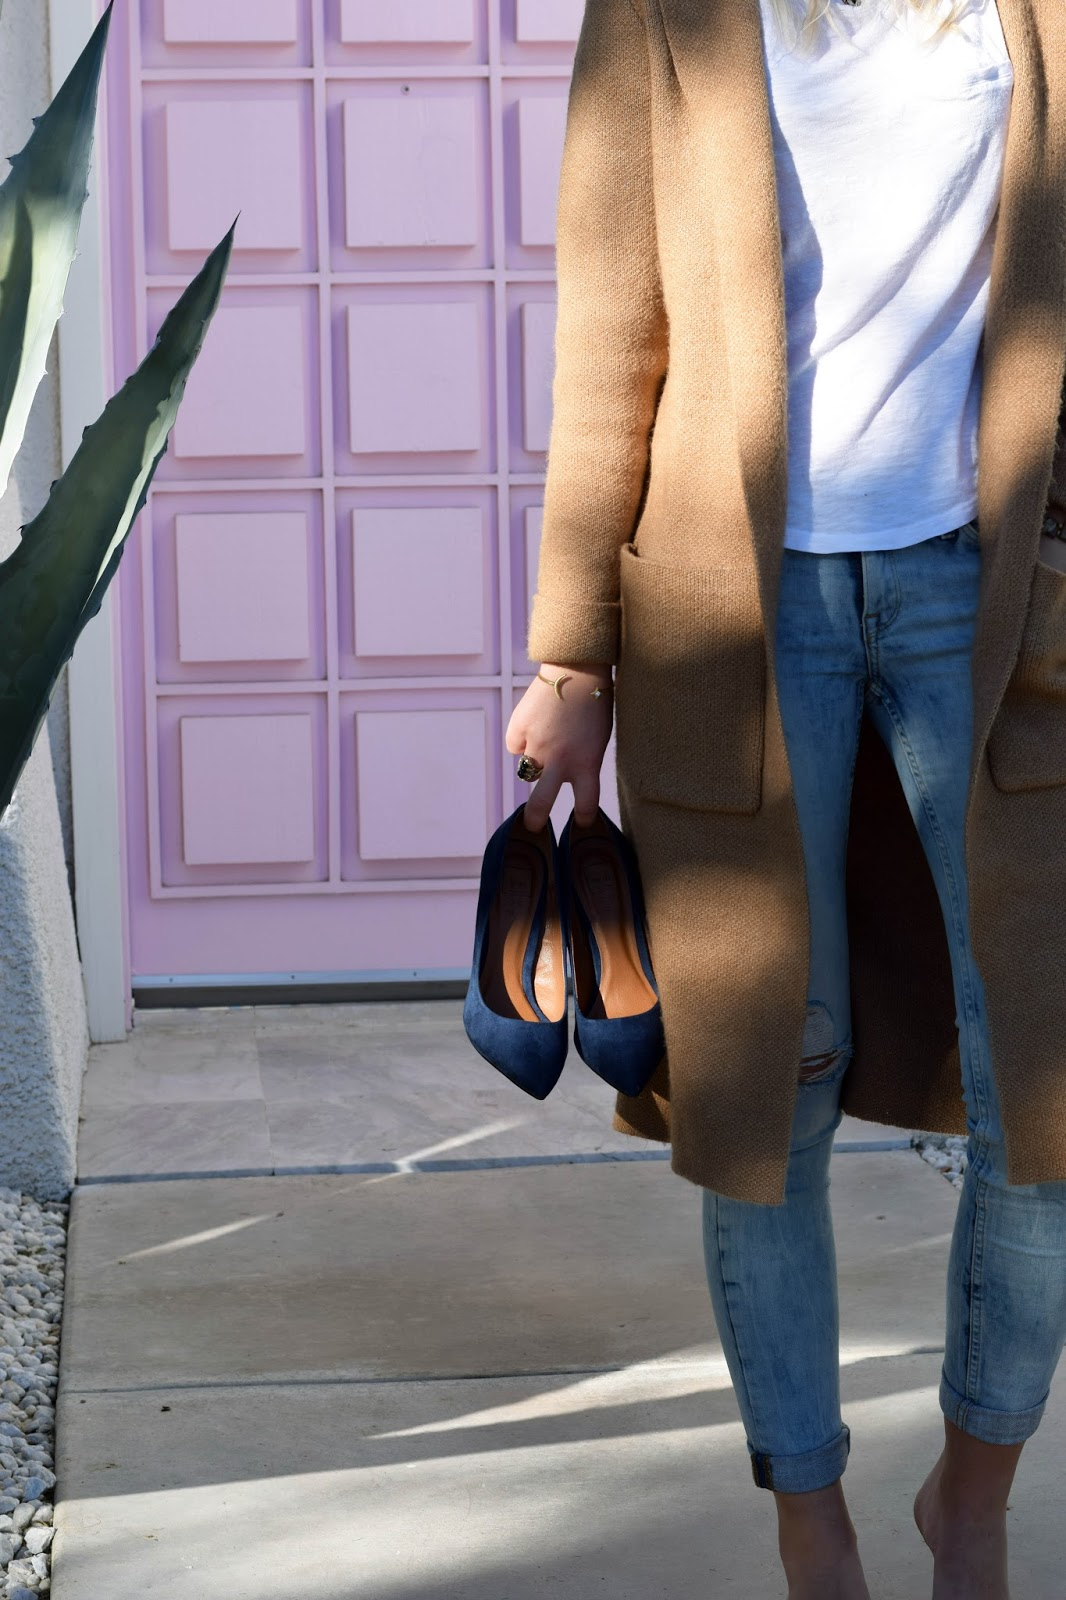 shushop, long cardigan, blue heels, palm springs, pink door